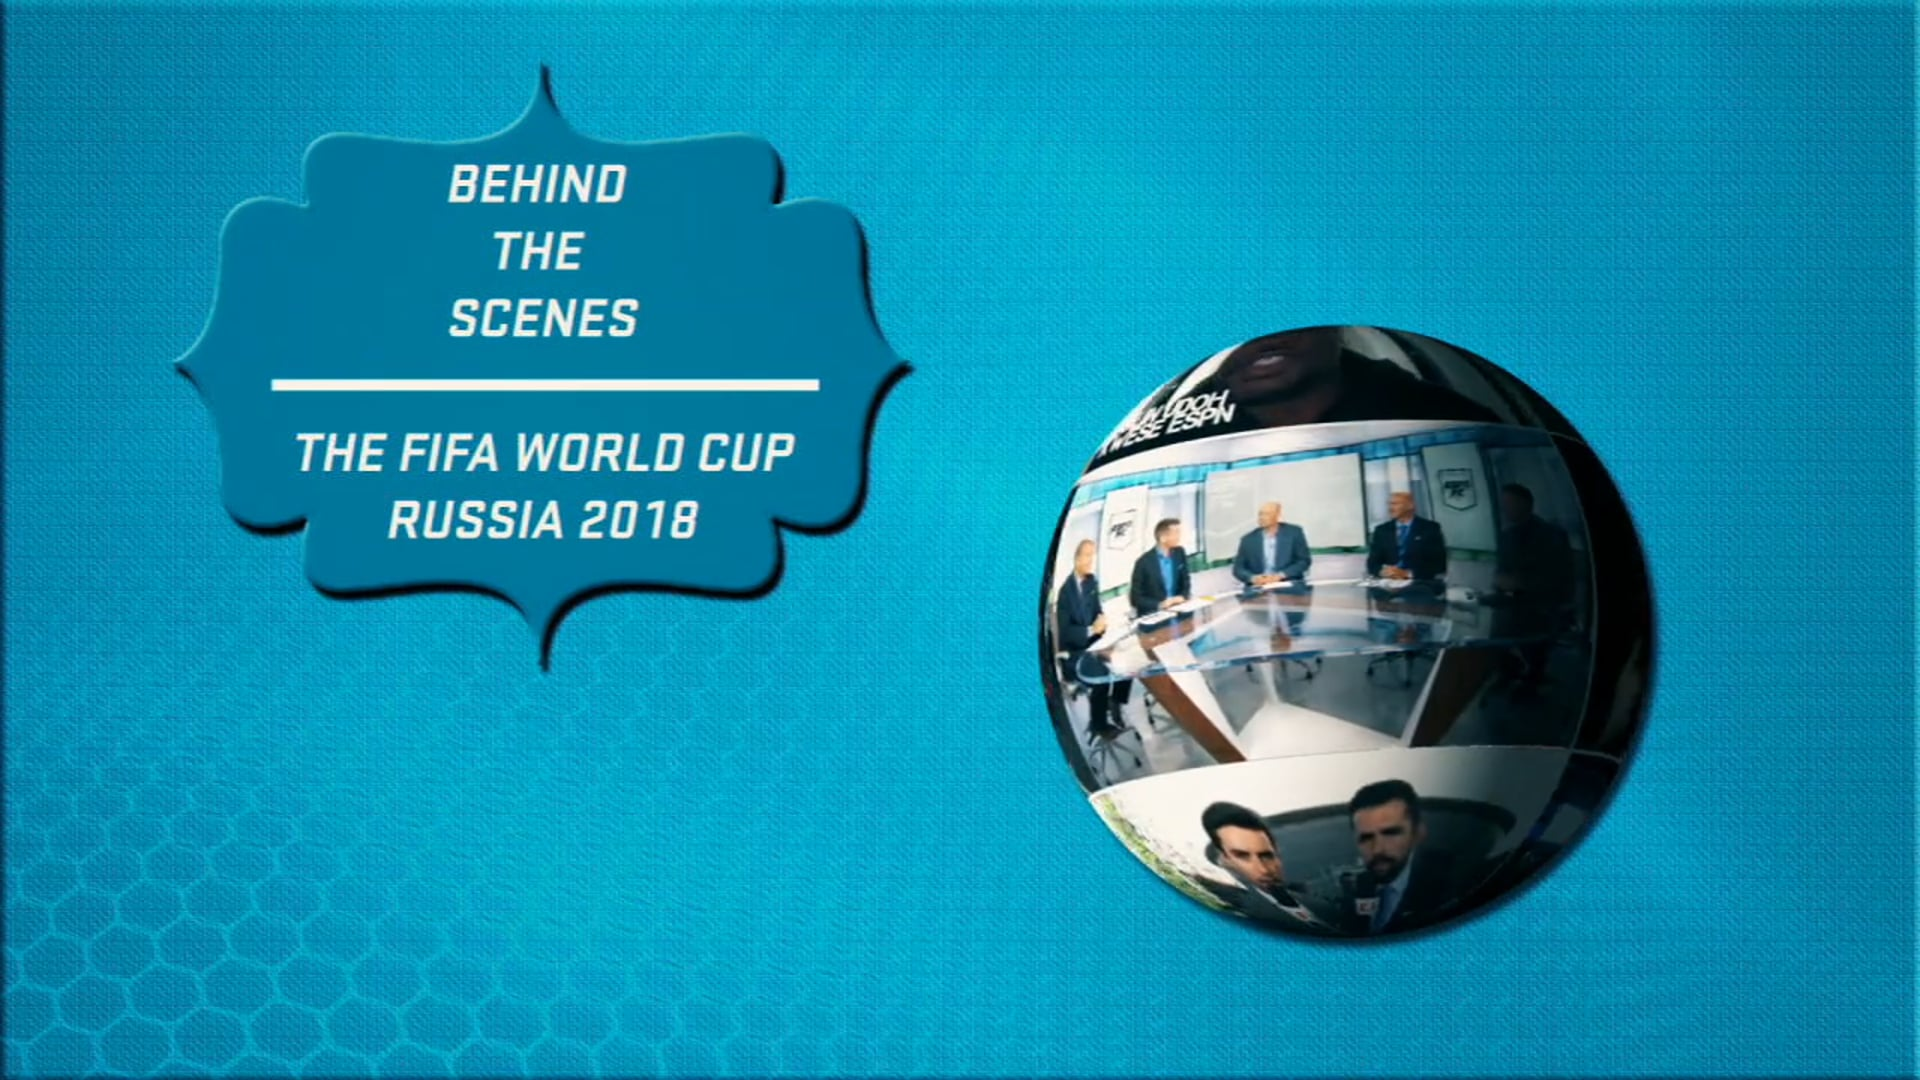 world cup behind the scenes